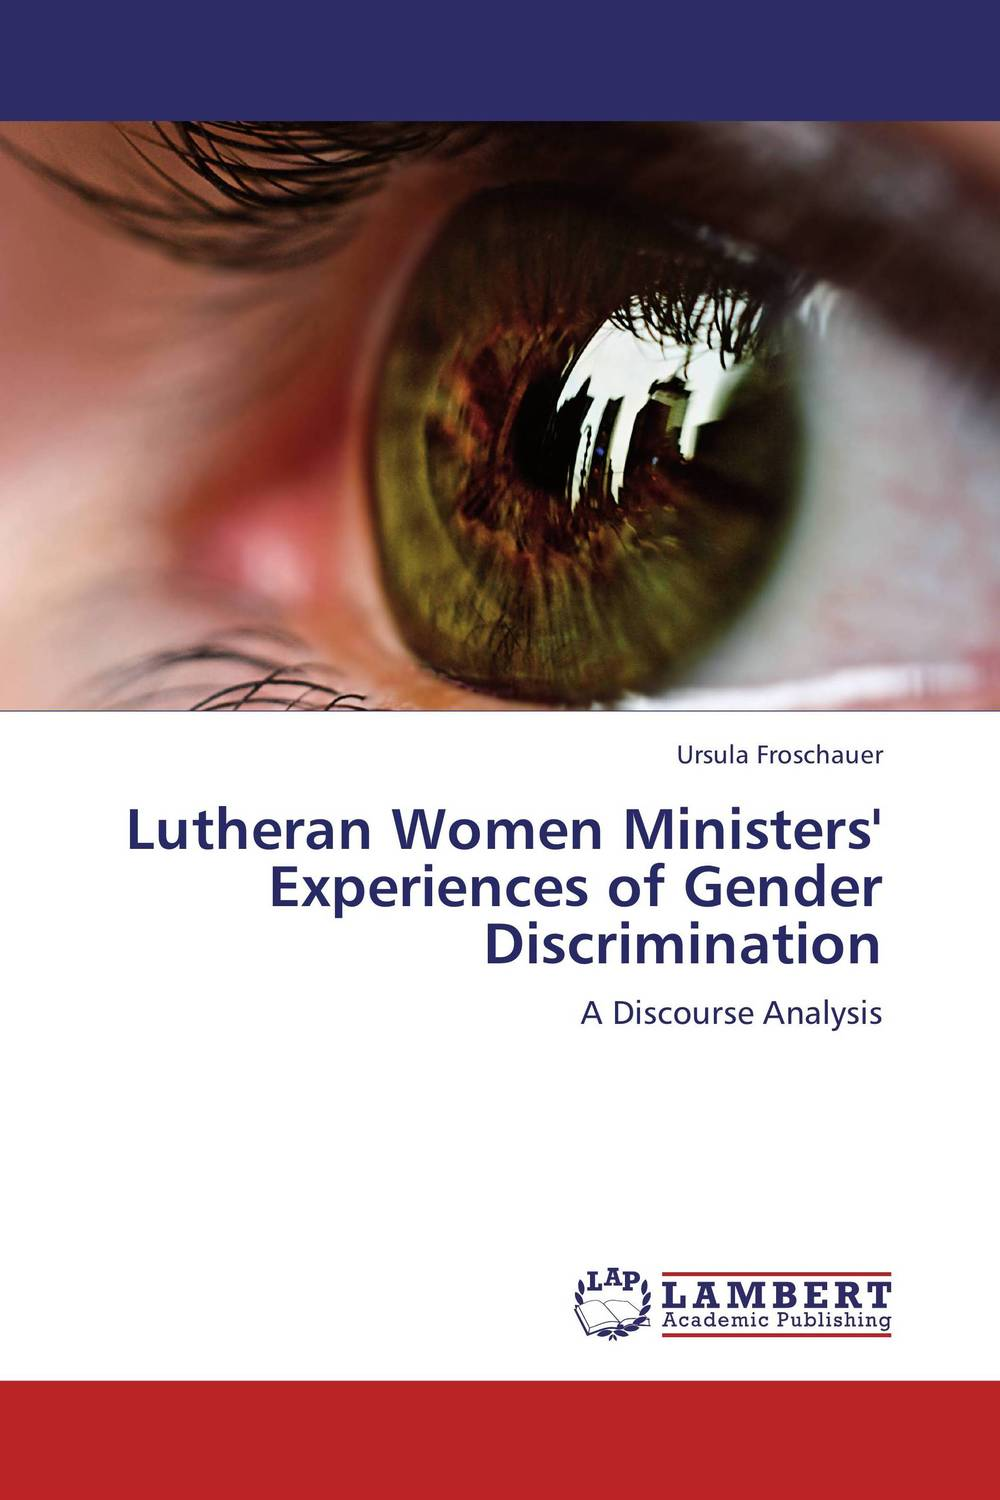 Lutheran Women Ministers' Experiences of Gender Discrimination